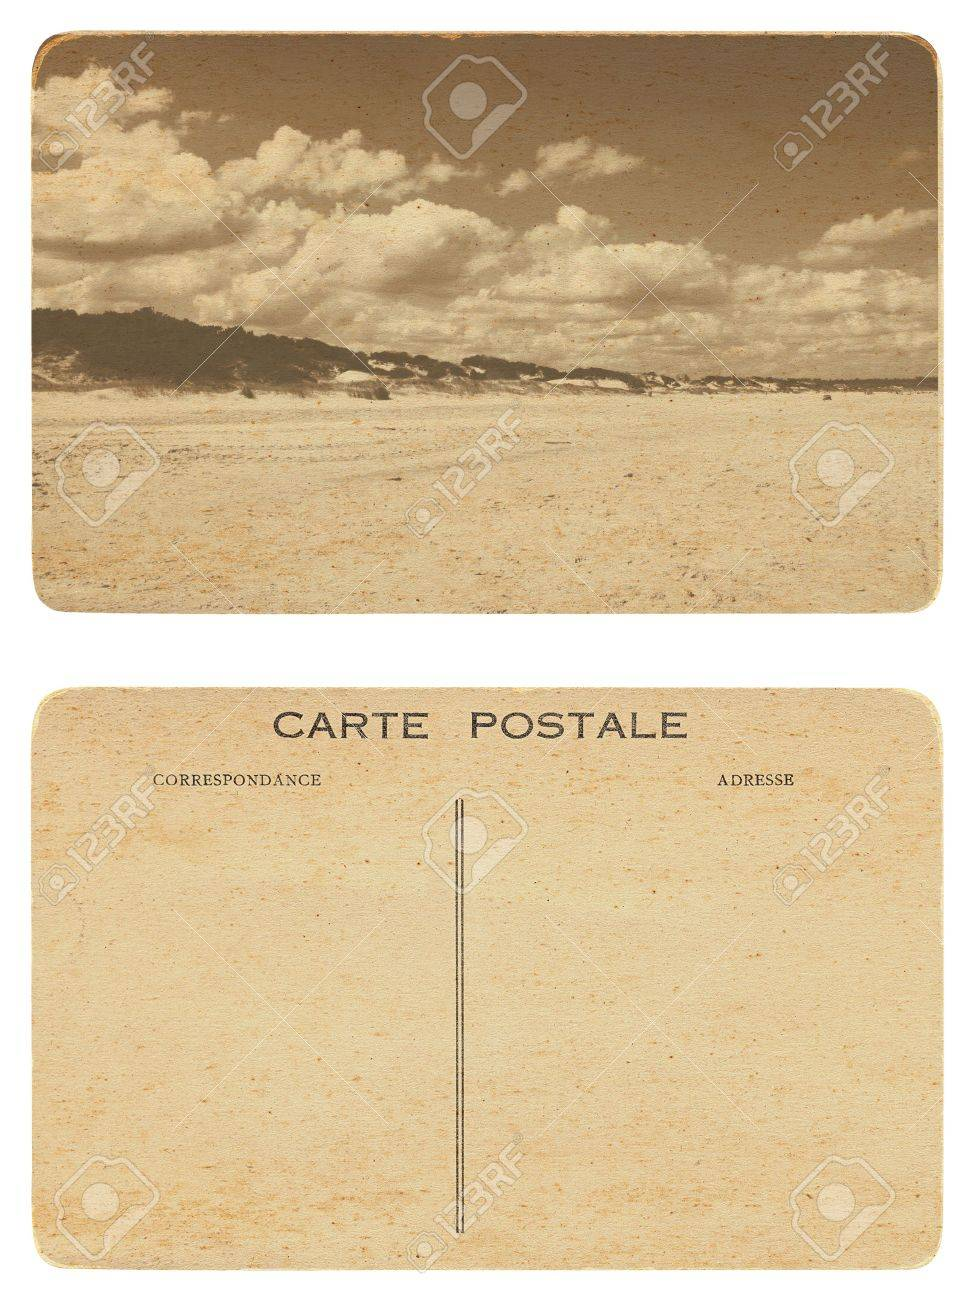 12 Old Postcard Front And Back Of With Picture A Beach Stock Photo